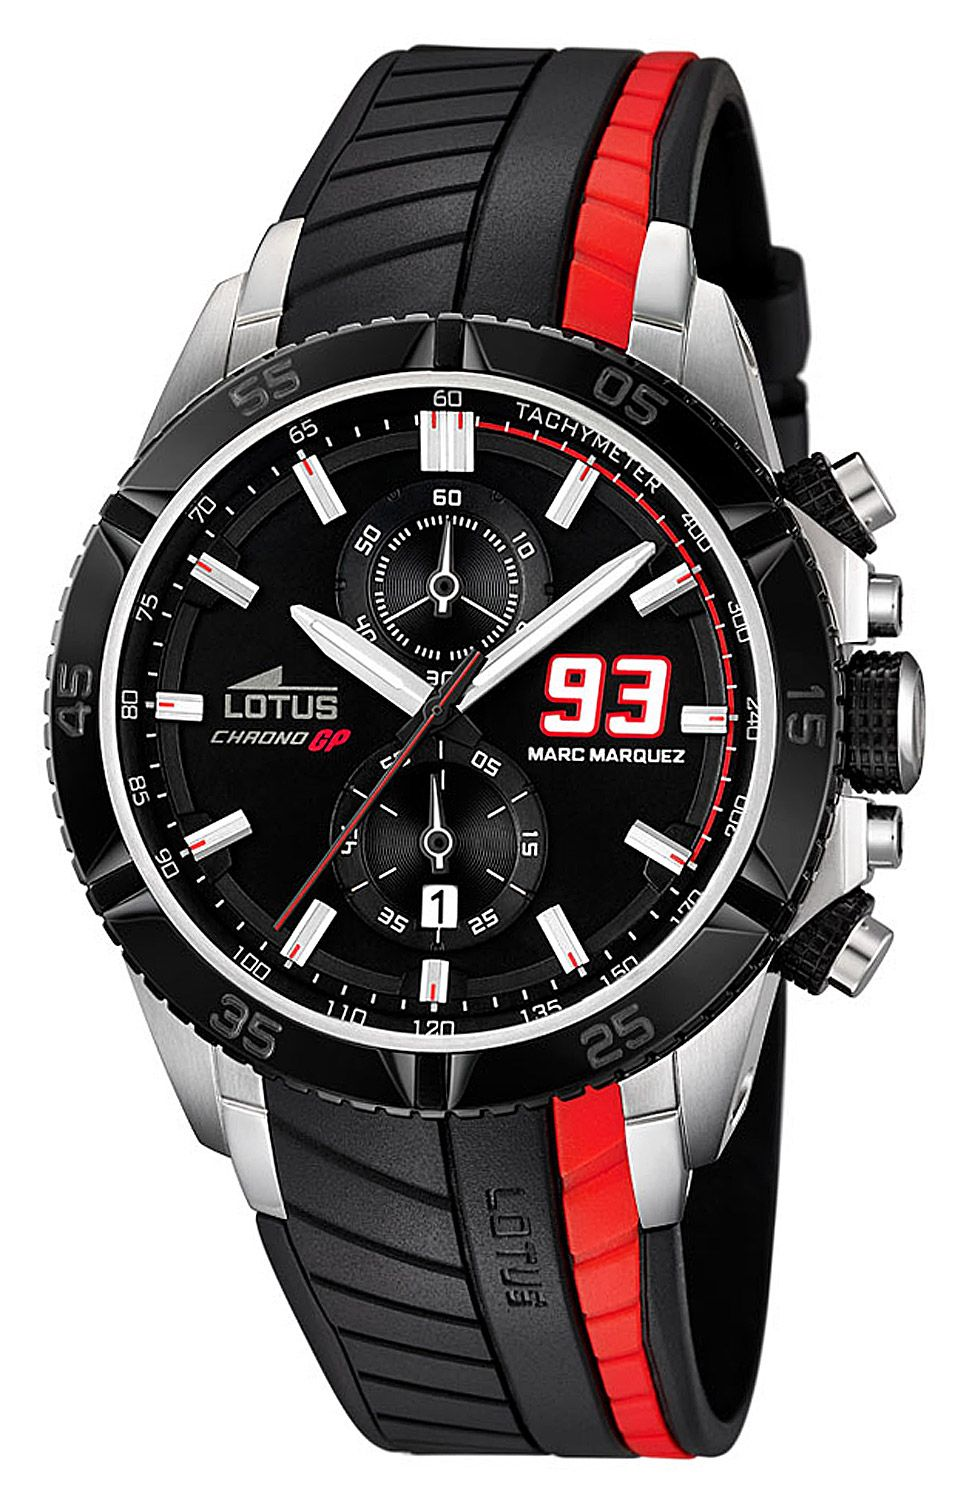 Buy LOTUS 18103/3 Chronograph Mens Watch Marc Marquez now from uhrcenter Watch Shop. ✓Official Lotus Stockist!